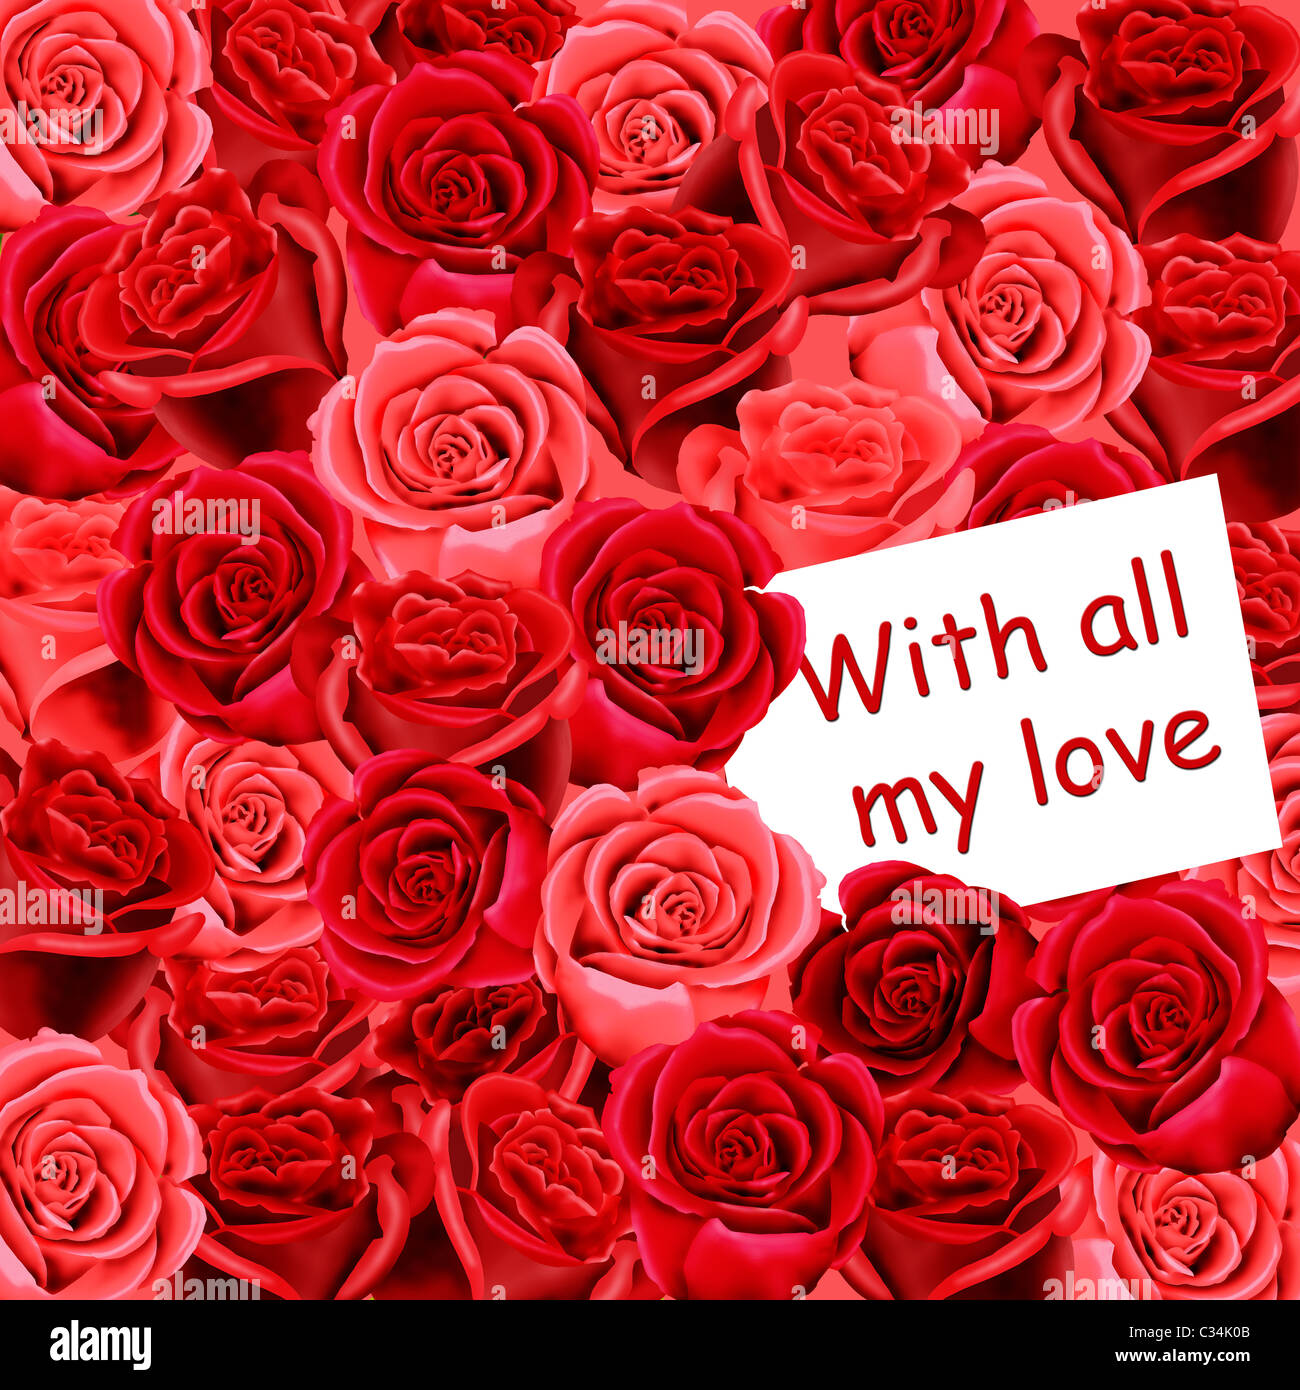 Birthday or mothers day card with roses and with all my love stock birthday or mothers day card with roses and with all my love izmirmasajfo